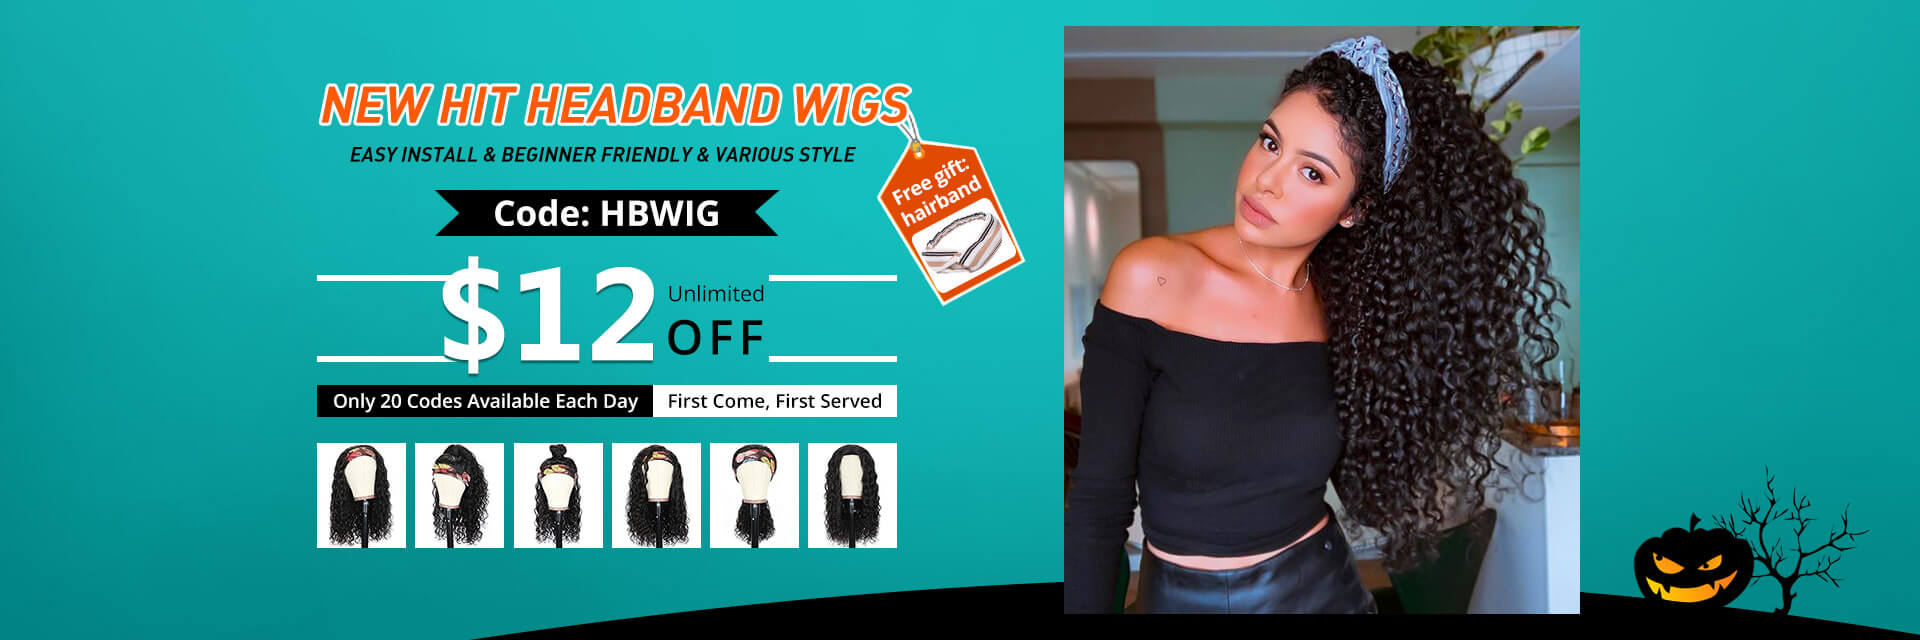 West kiss hair store human hair wig deals up to 49% off